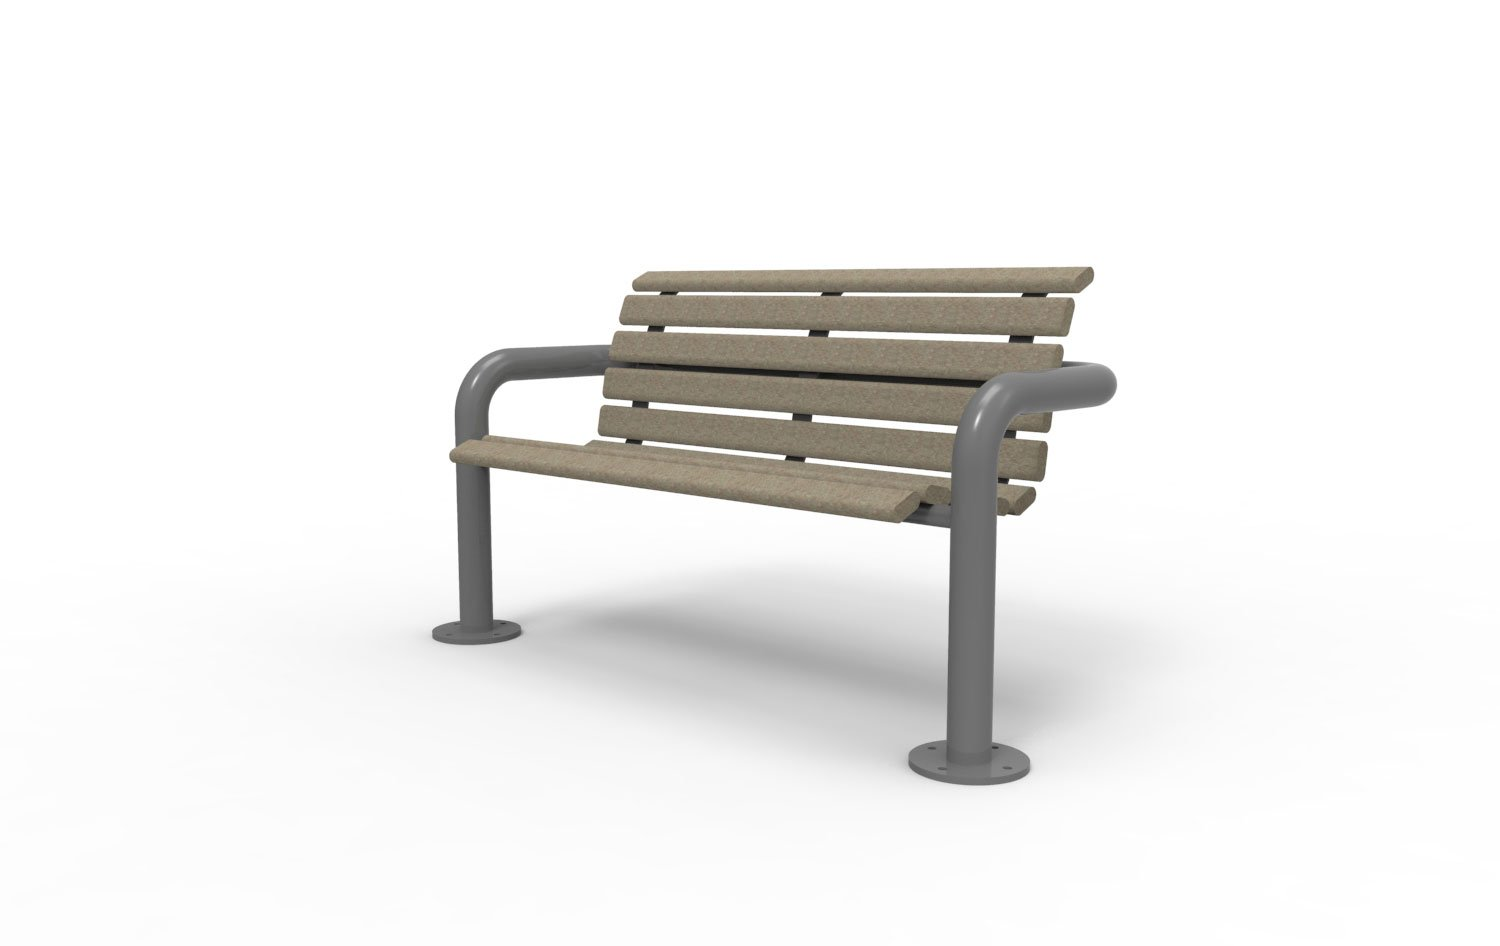 Industrial Benches For Sitting Backed Benches For Retail Commercial And Parks Green